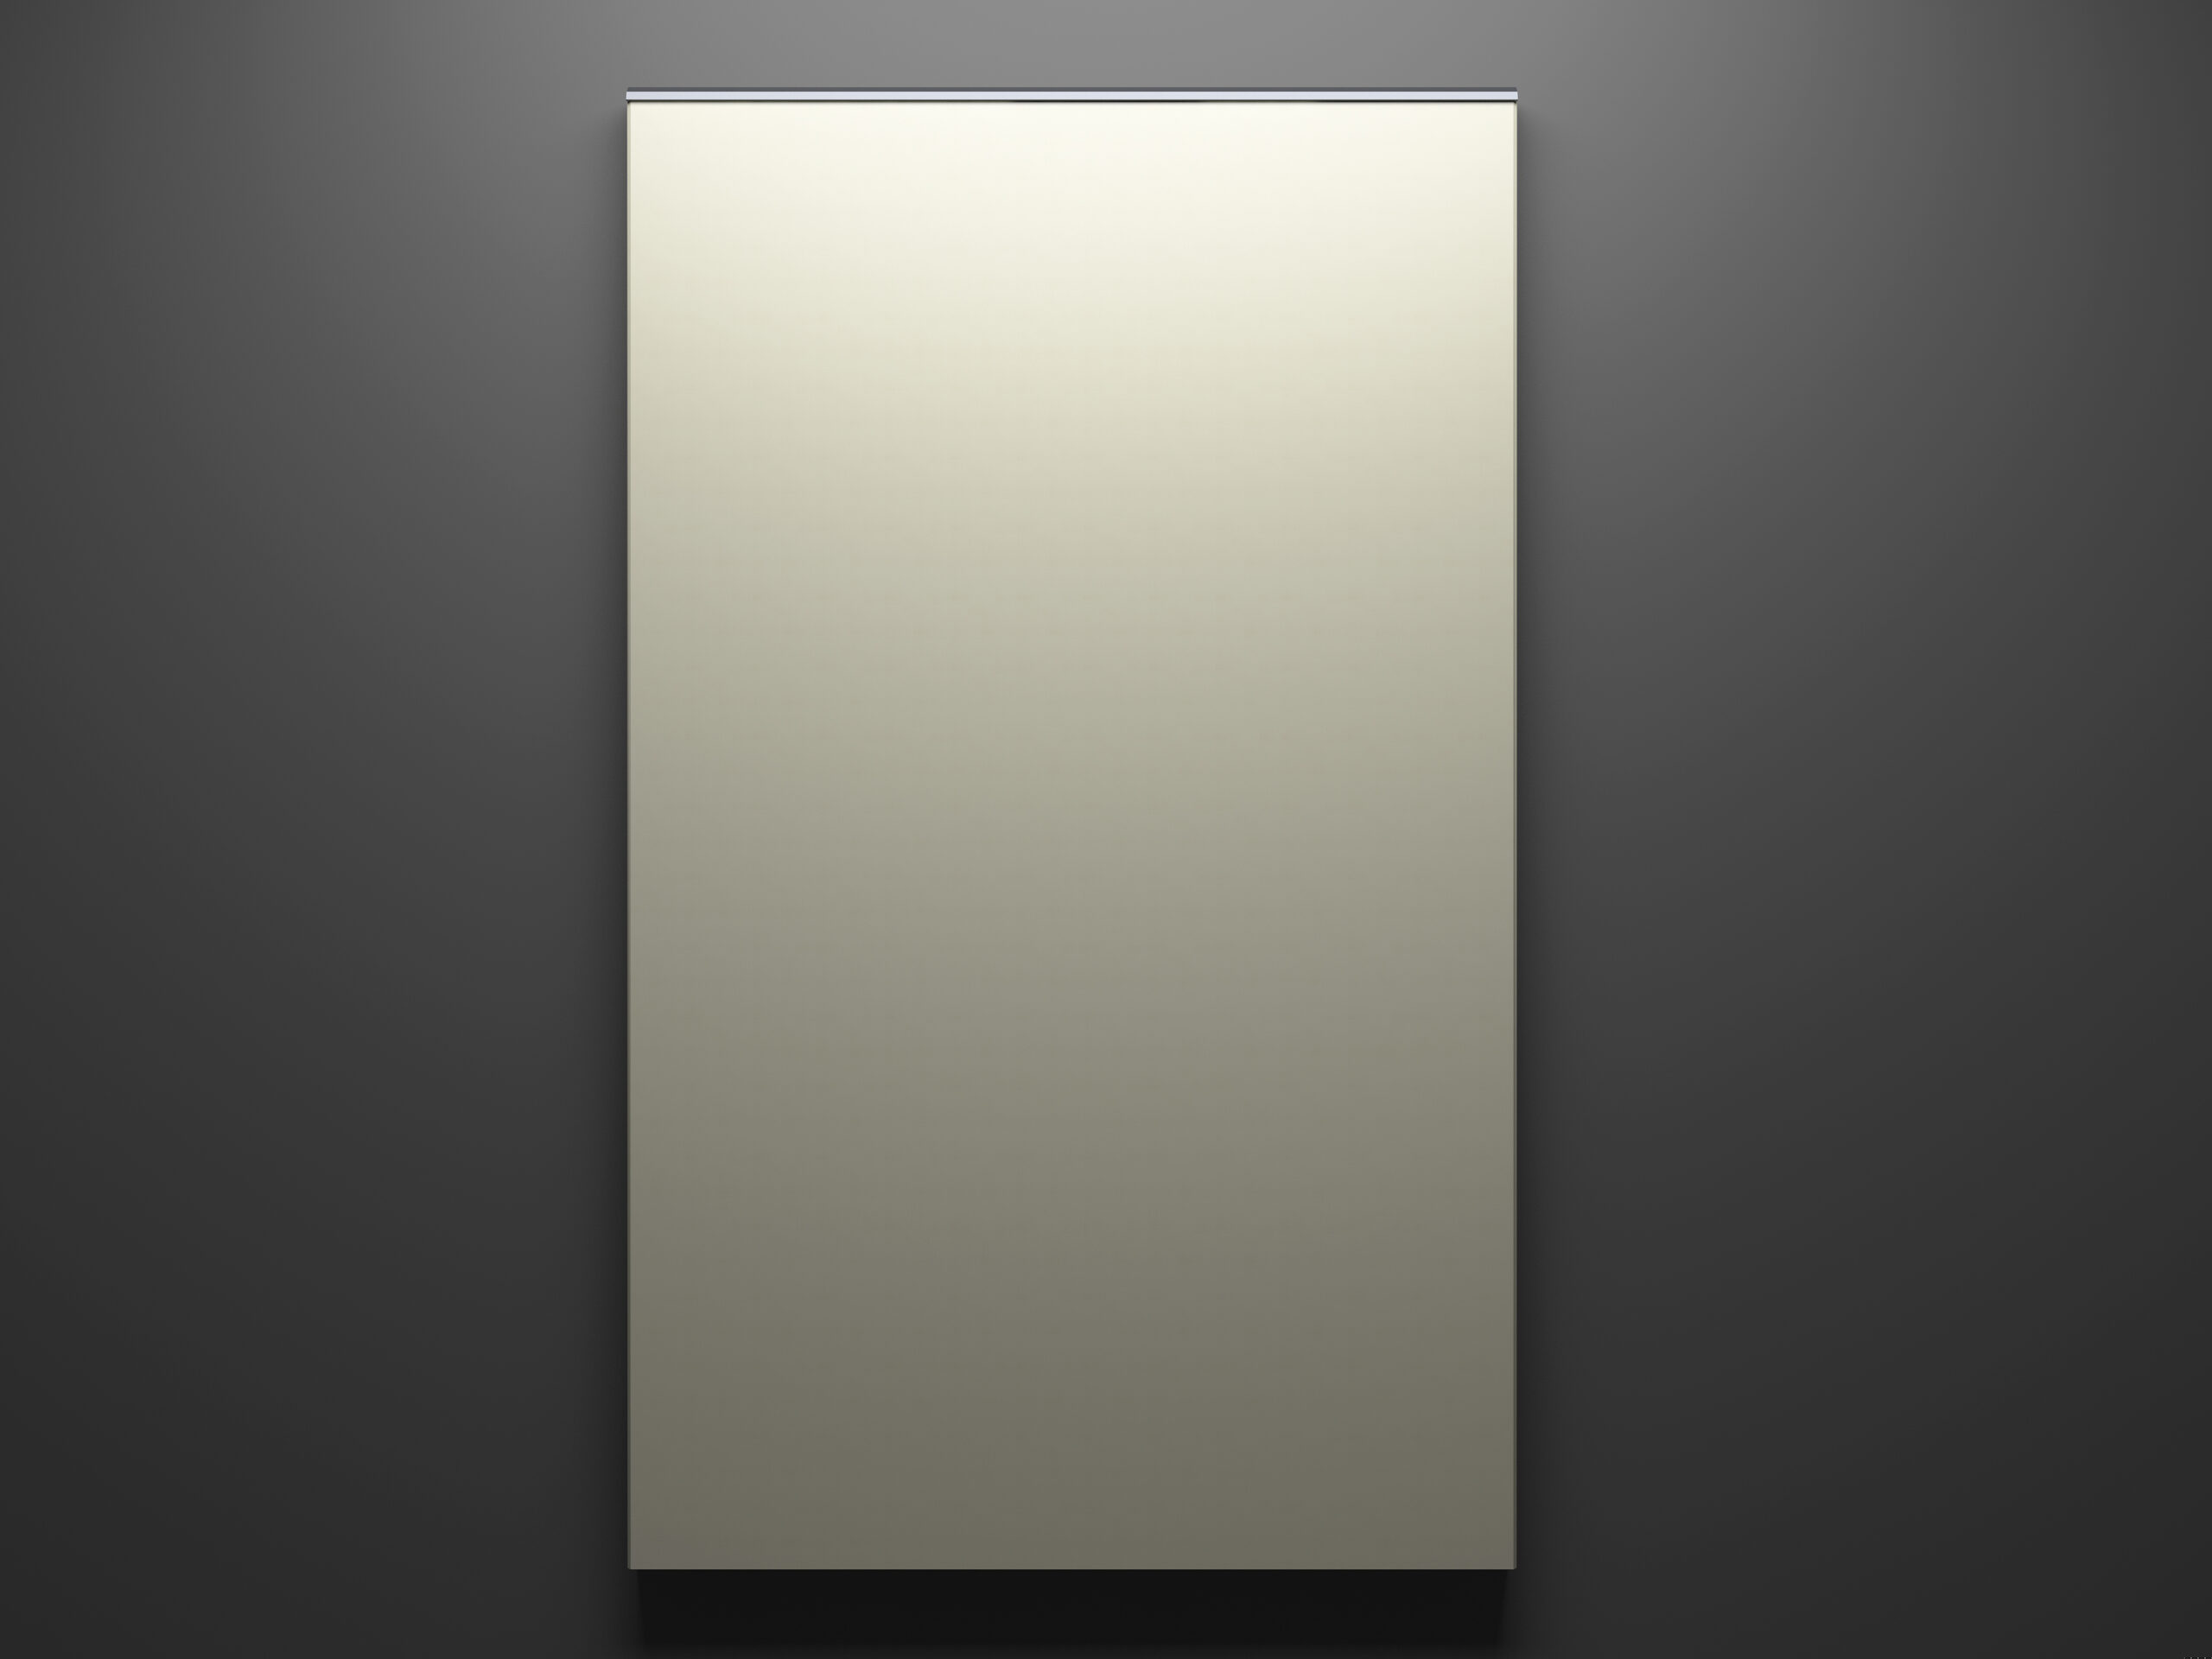 C3 Sample Door on Grey Background